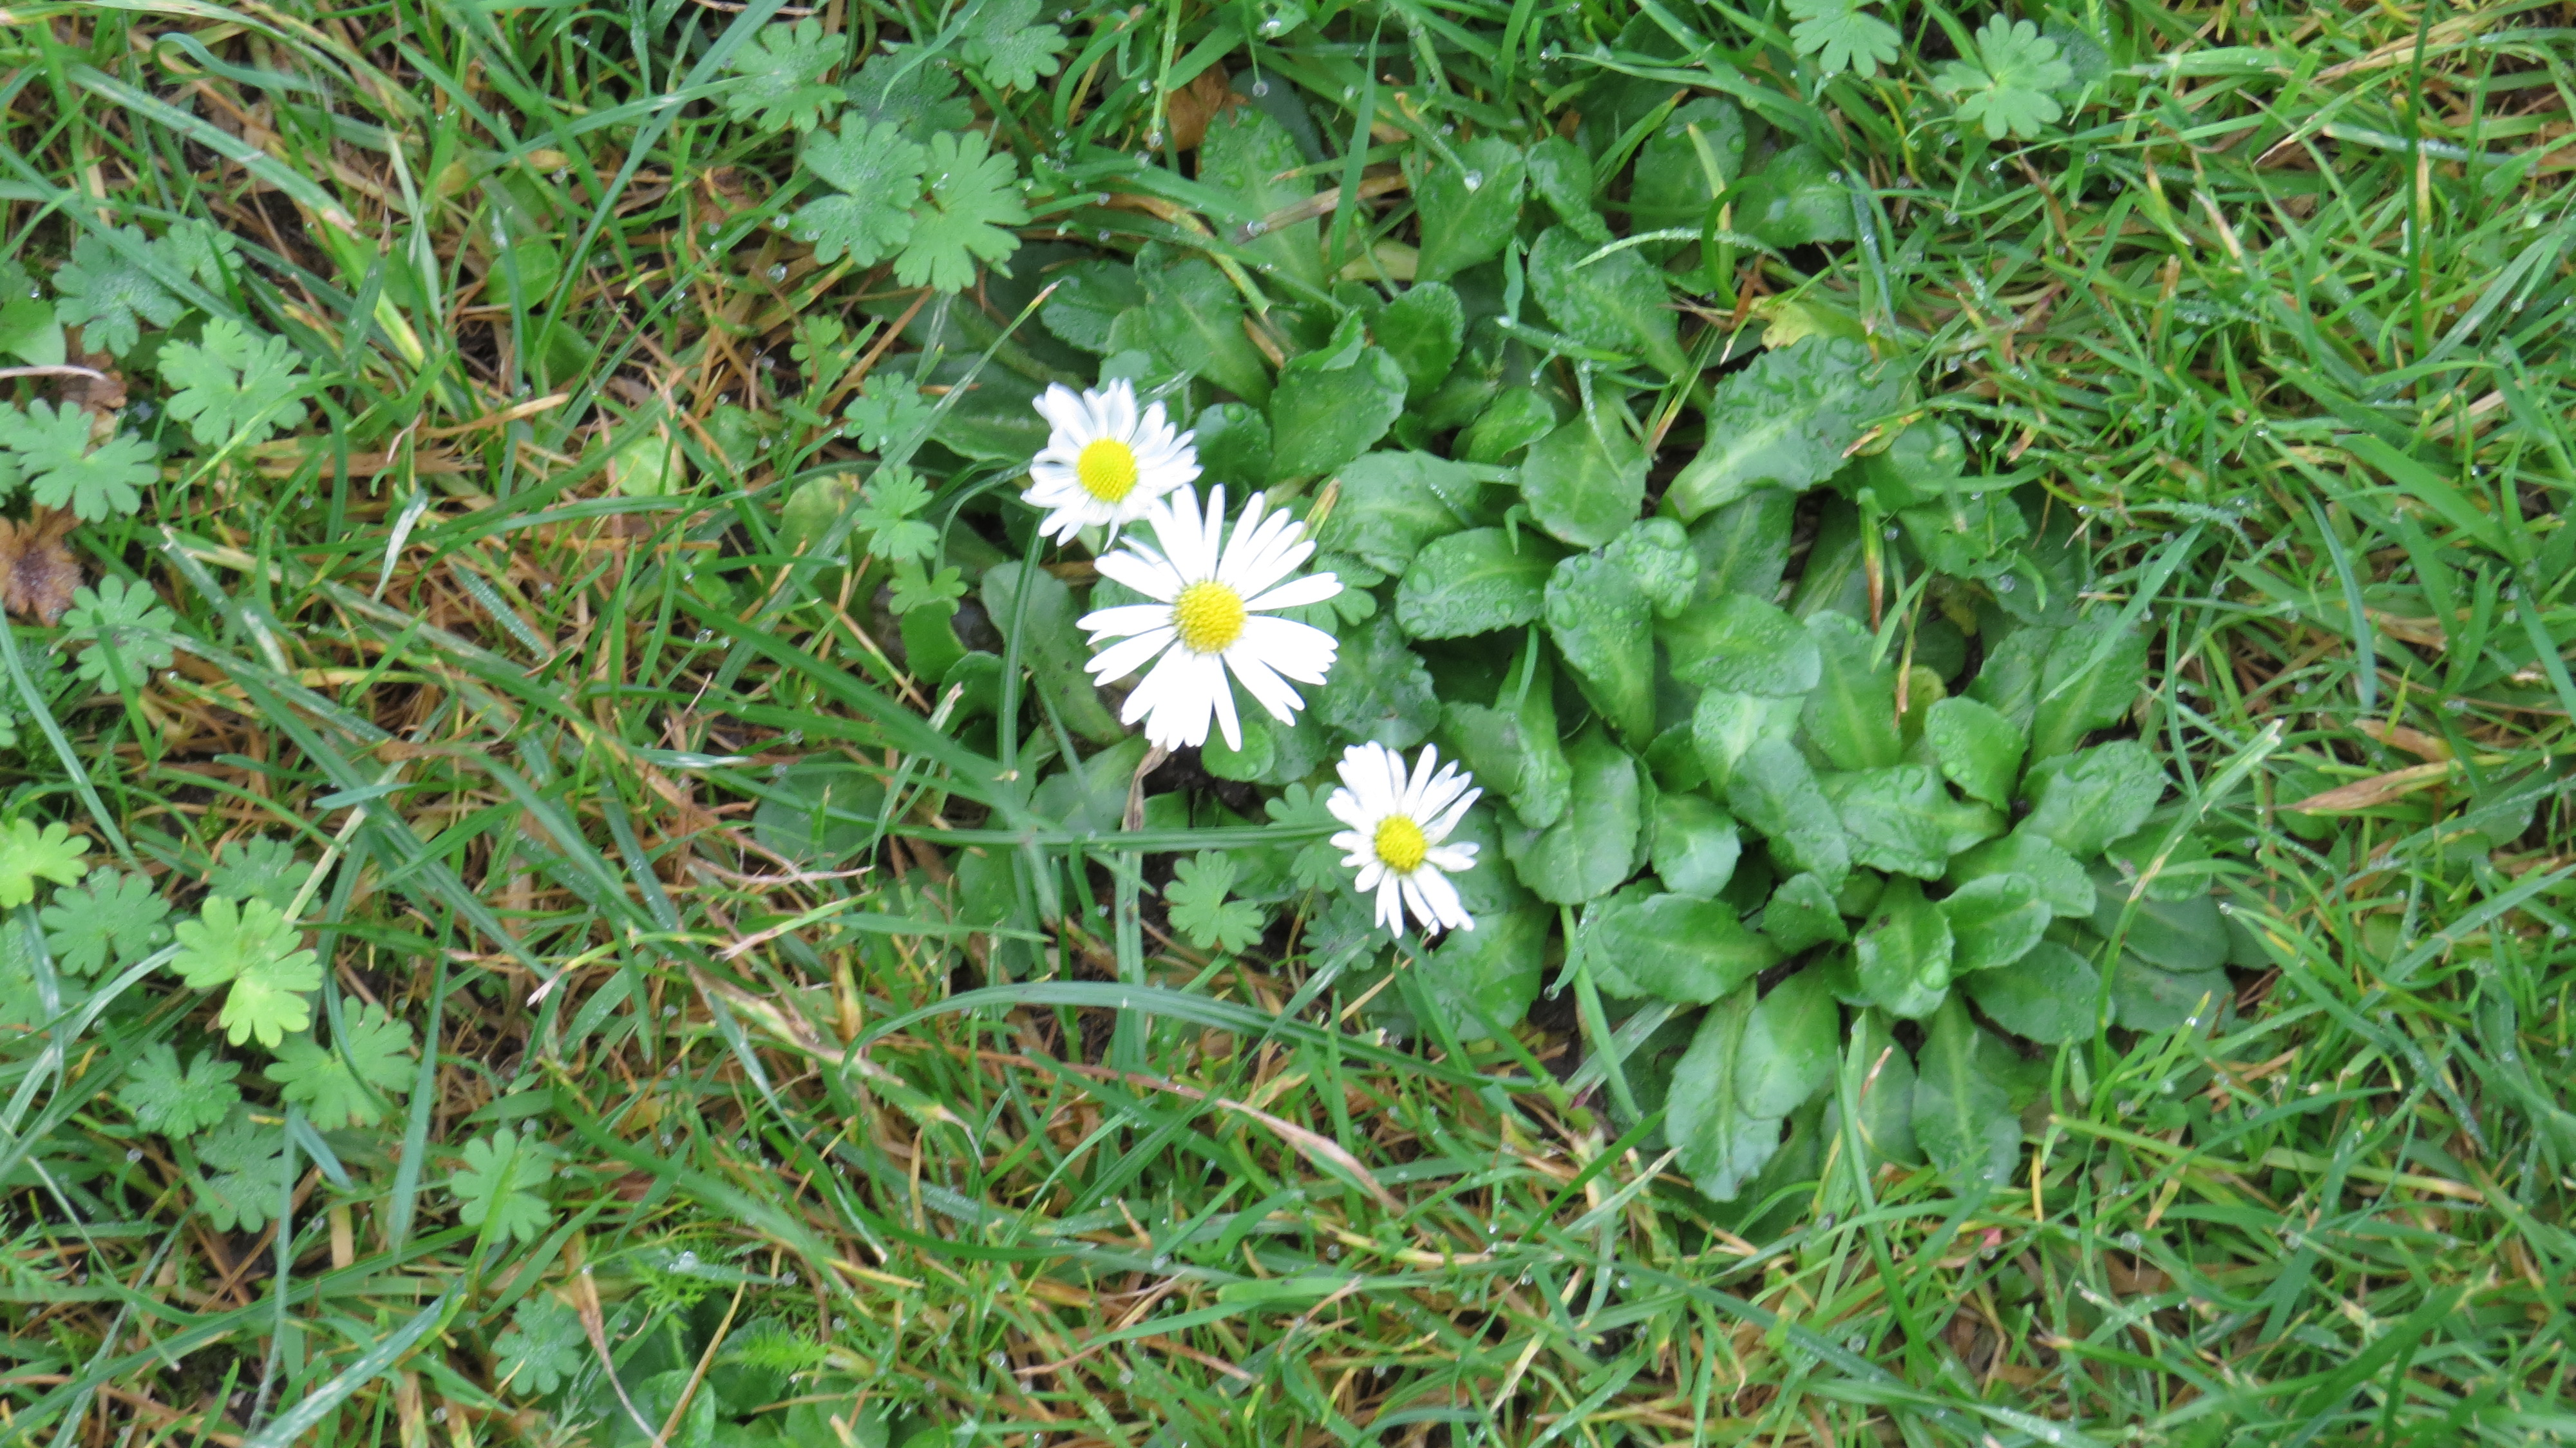 Wednesday Weed Daisy Bug Woman Adventures In London